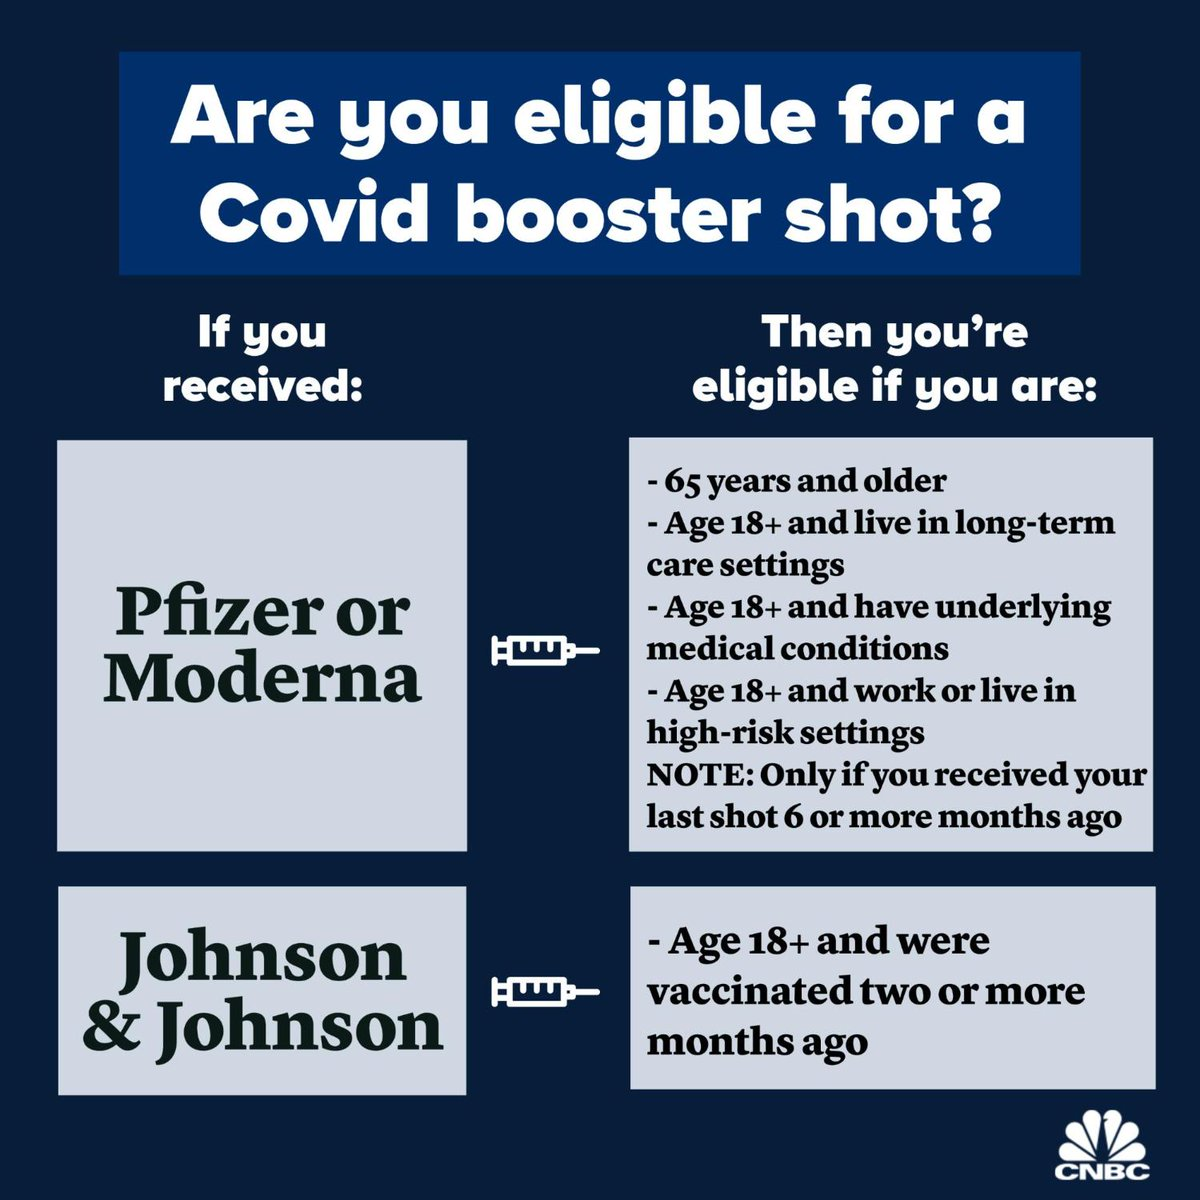 RT @CNBC: Are you eligible for a Covid booster shot? https://t.co/G1jYIUf62P https://t.co/bCItZy5ay6